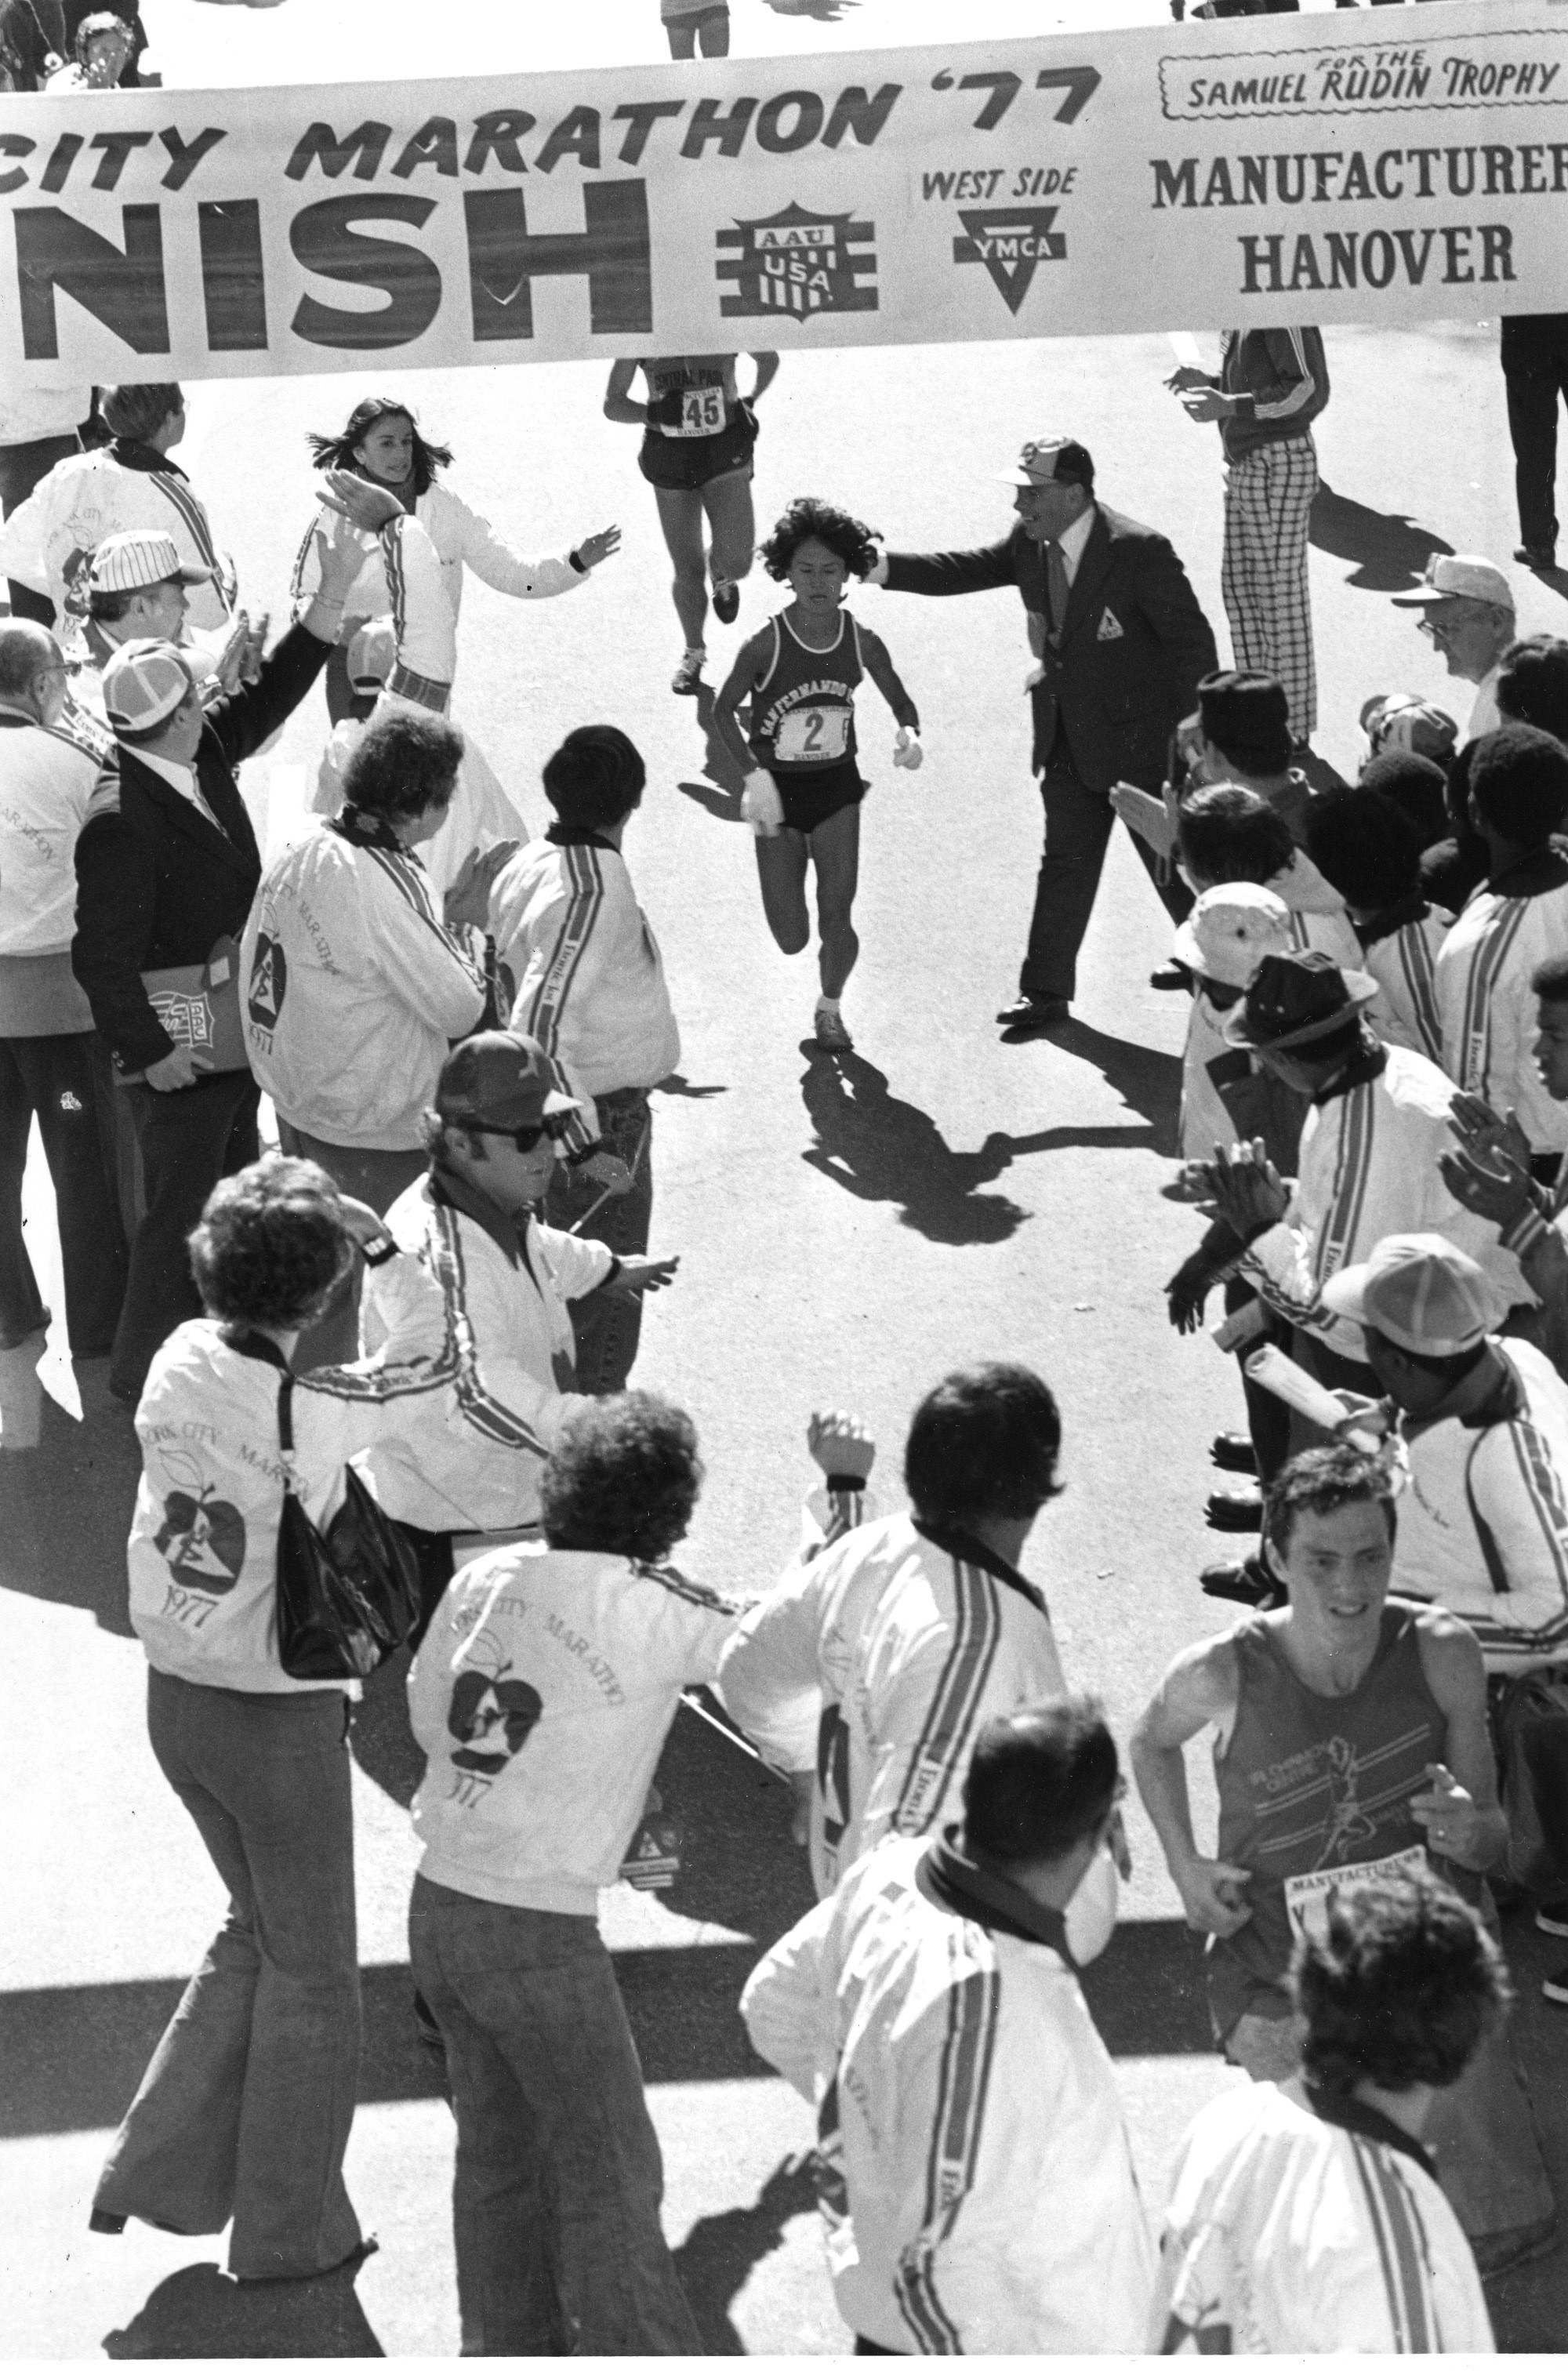 Miki Gorman (2) approaches the finish line in Central Park as the first woman finisher in the New York City Marathon, Sunday, Oct. 23 1977. The 42-year-old Japanese-American from San Francisco, Ca., won the 26-mile, 335-yard race for the second straight year. (AP Photo)